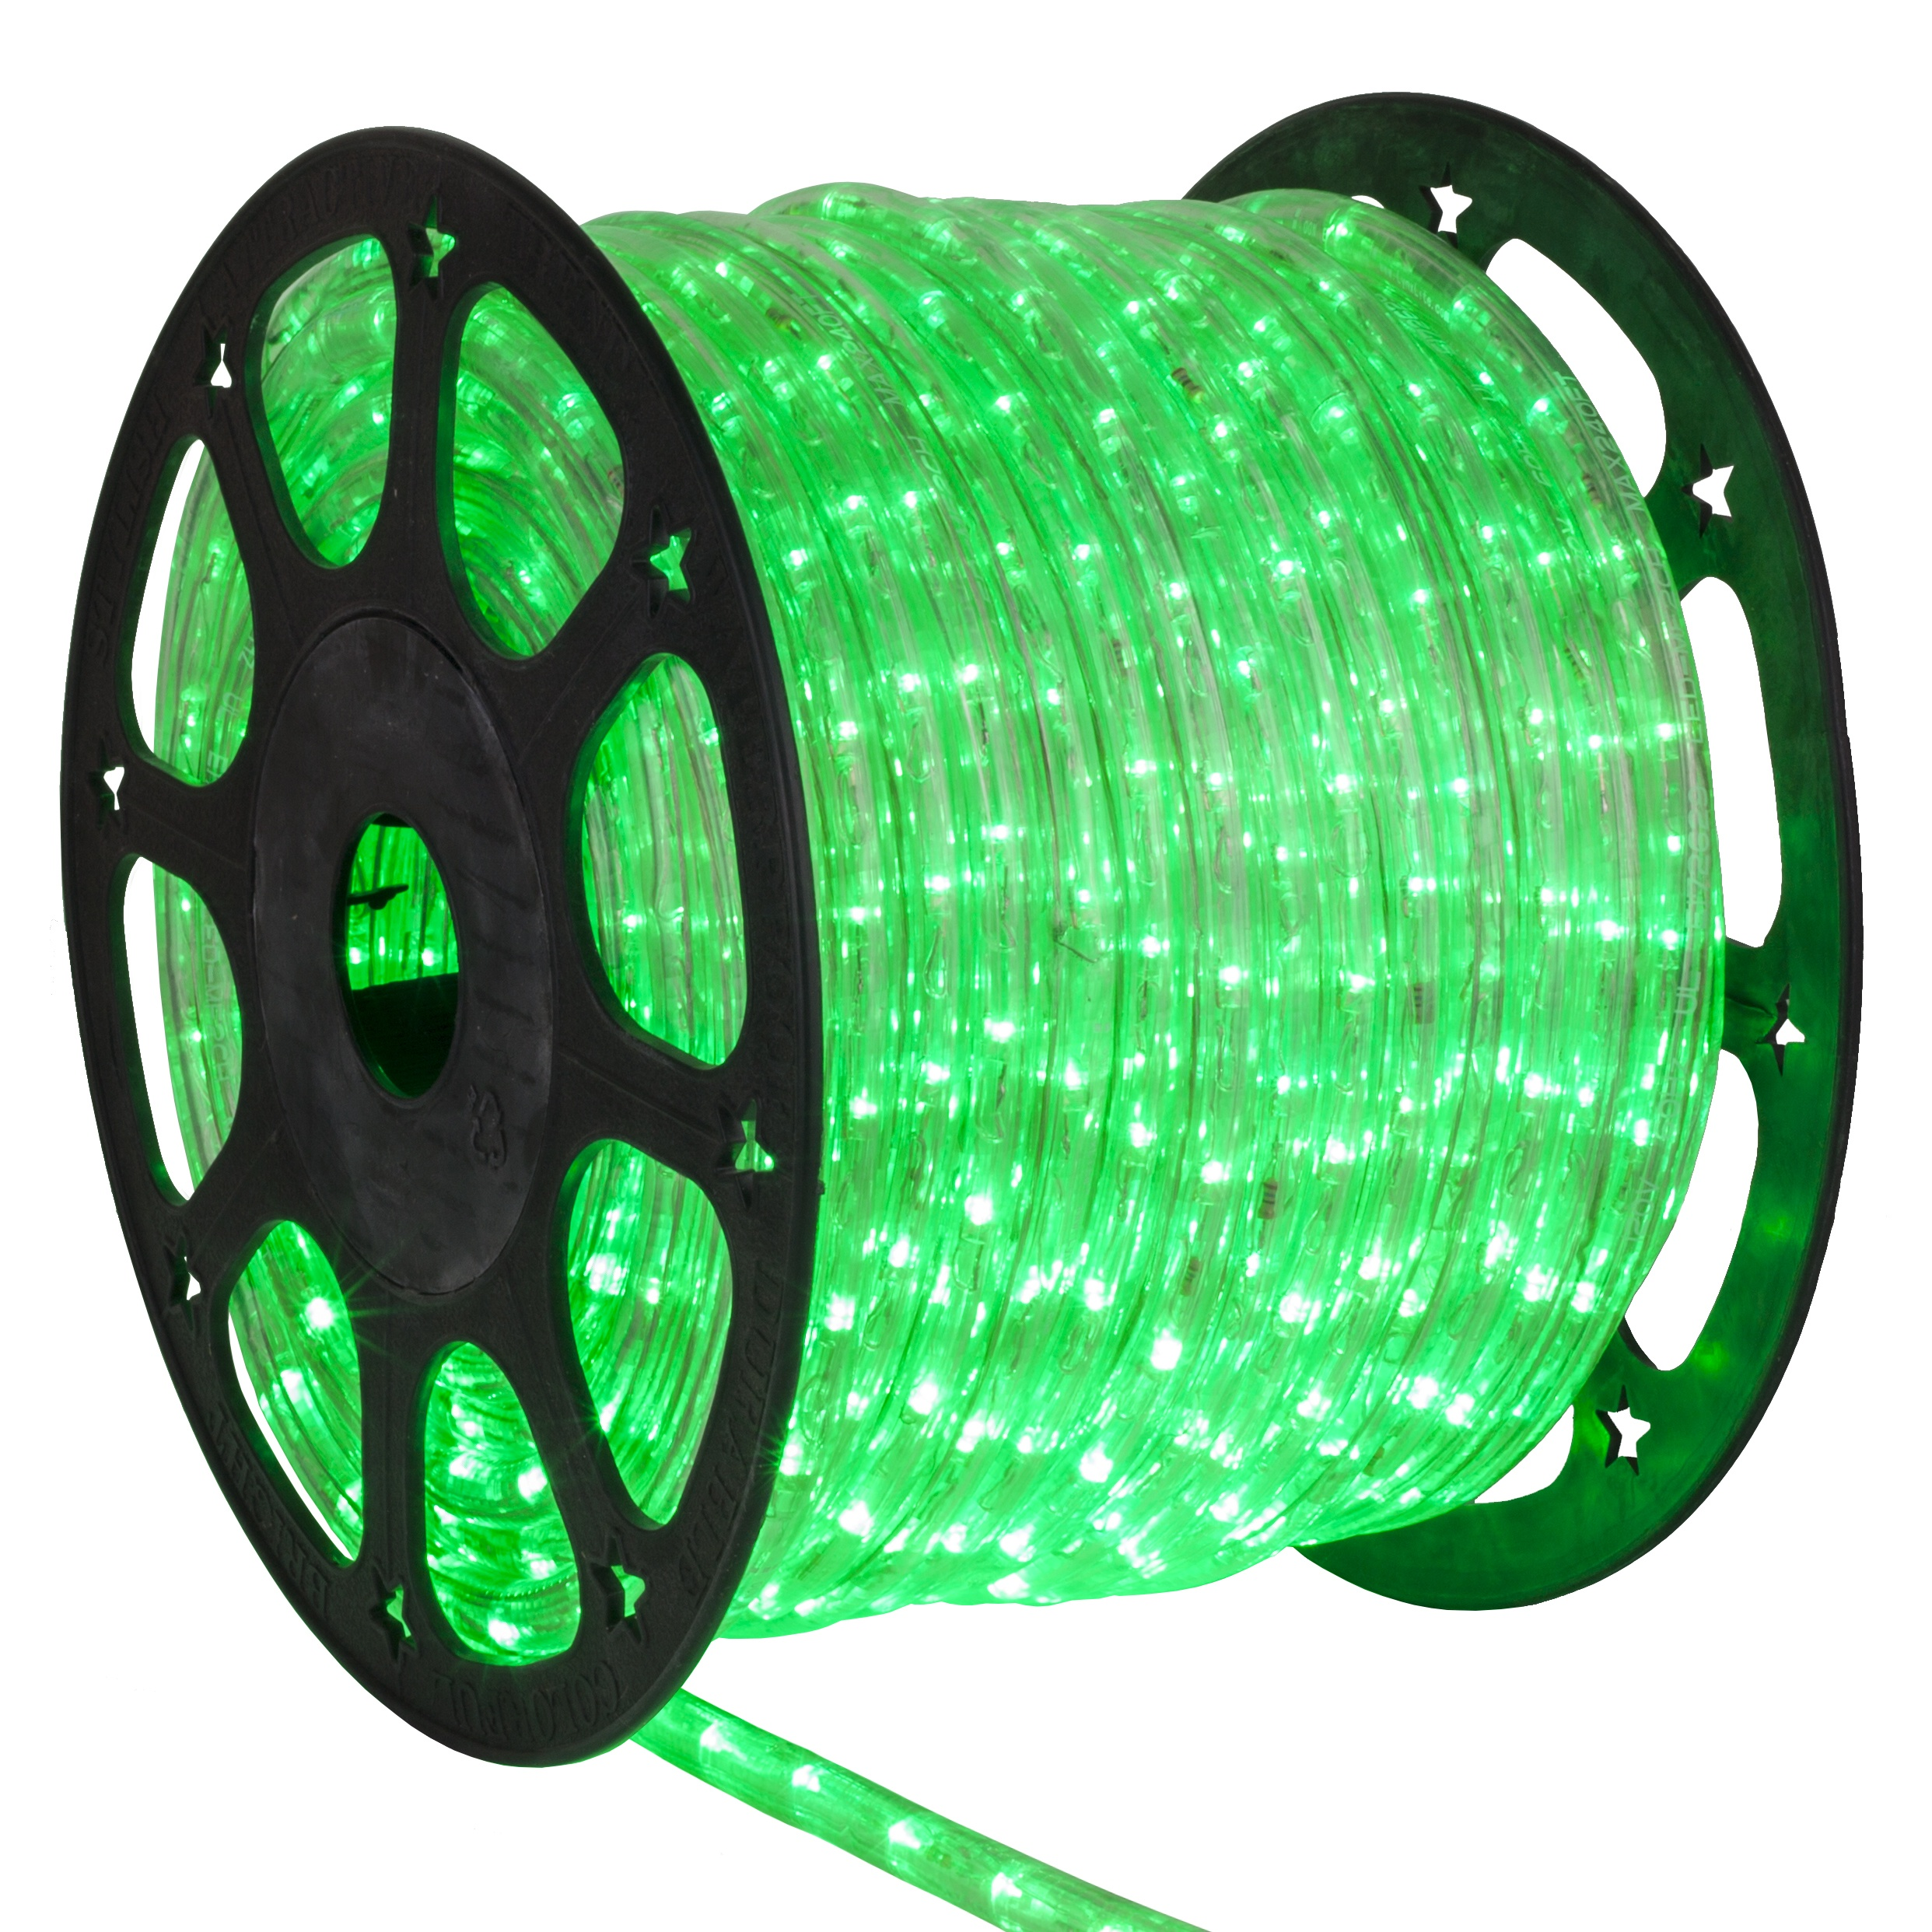 True Green LED Rope Light Spool